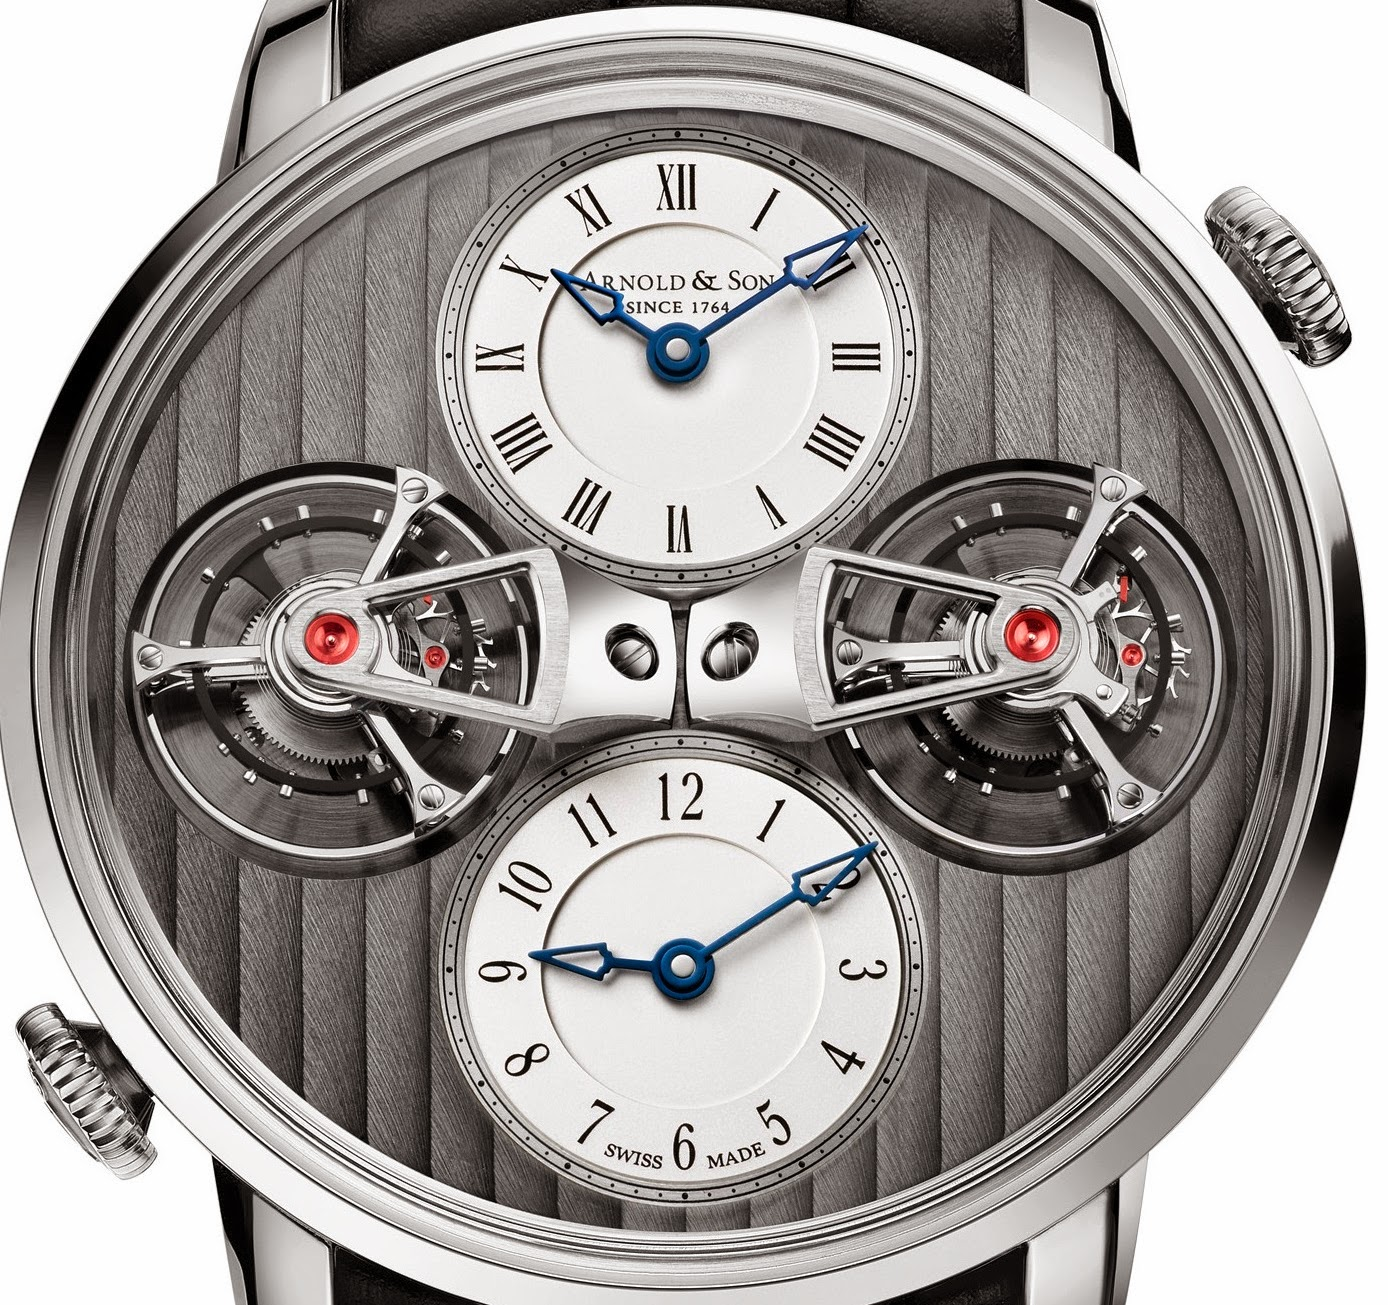 Arnold & Son - DTE Double Tourbillon Escapement Dual Time for 2015